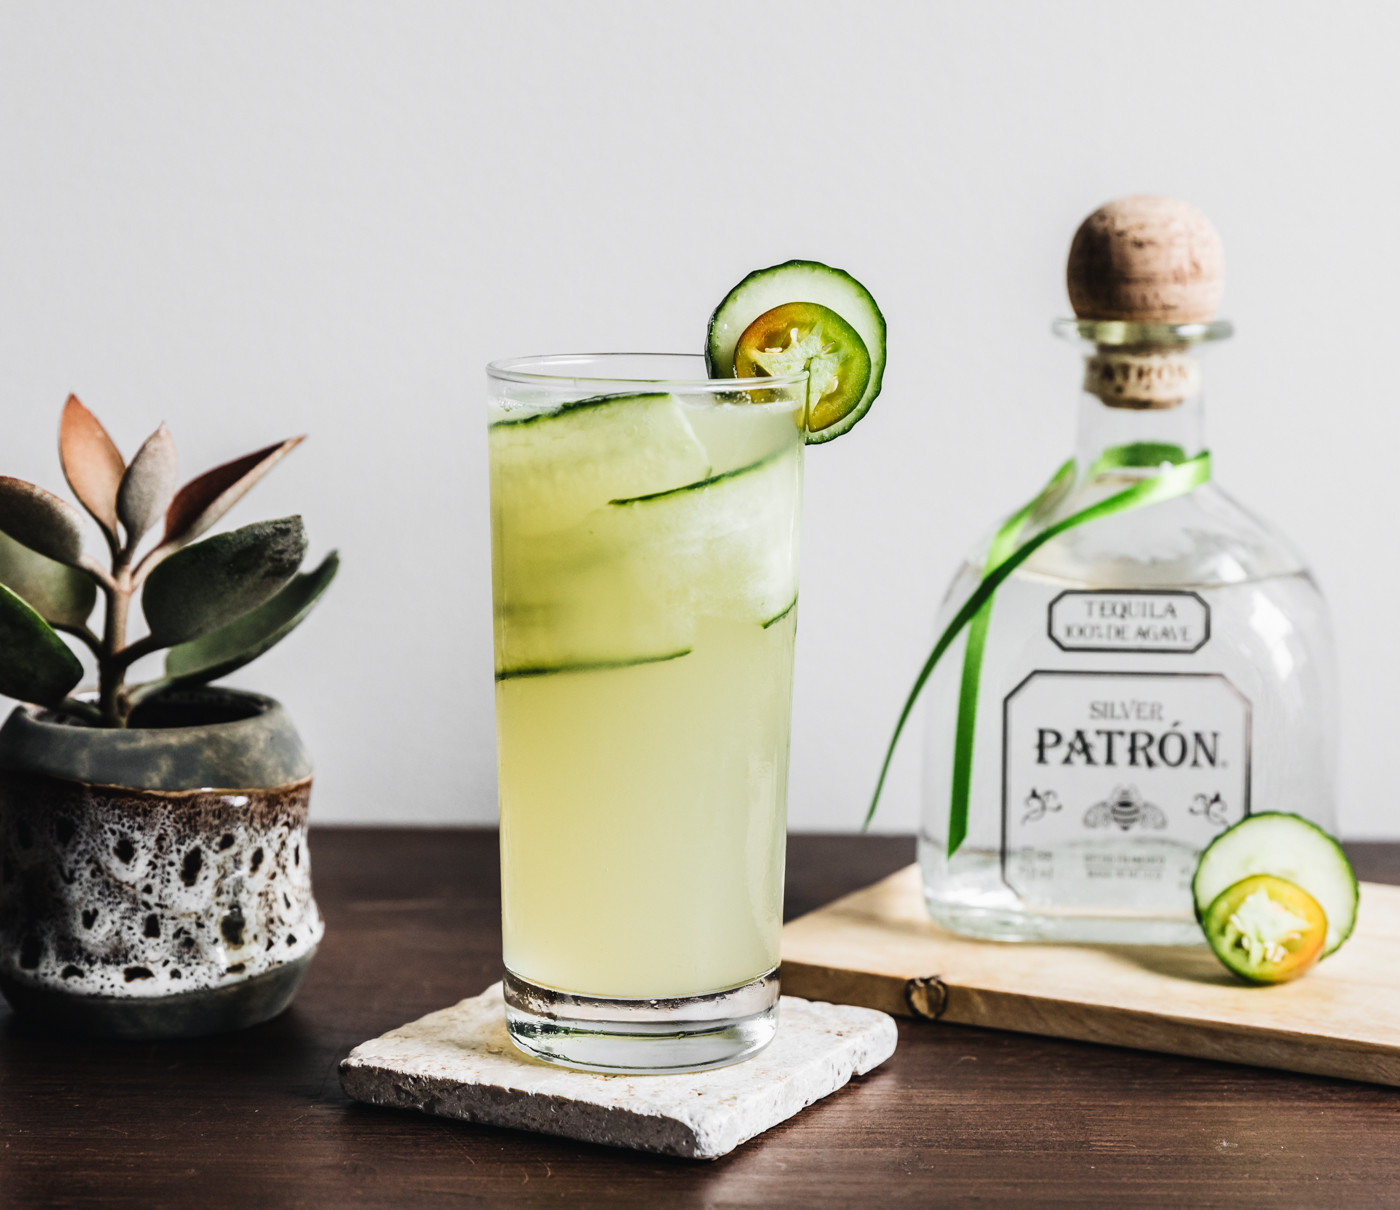 Summer Drinks With Tequila  Patron Silver Drink Recipes – Besto Blog